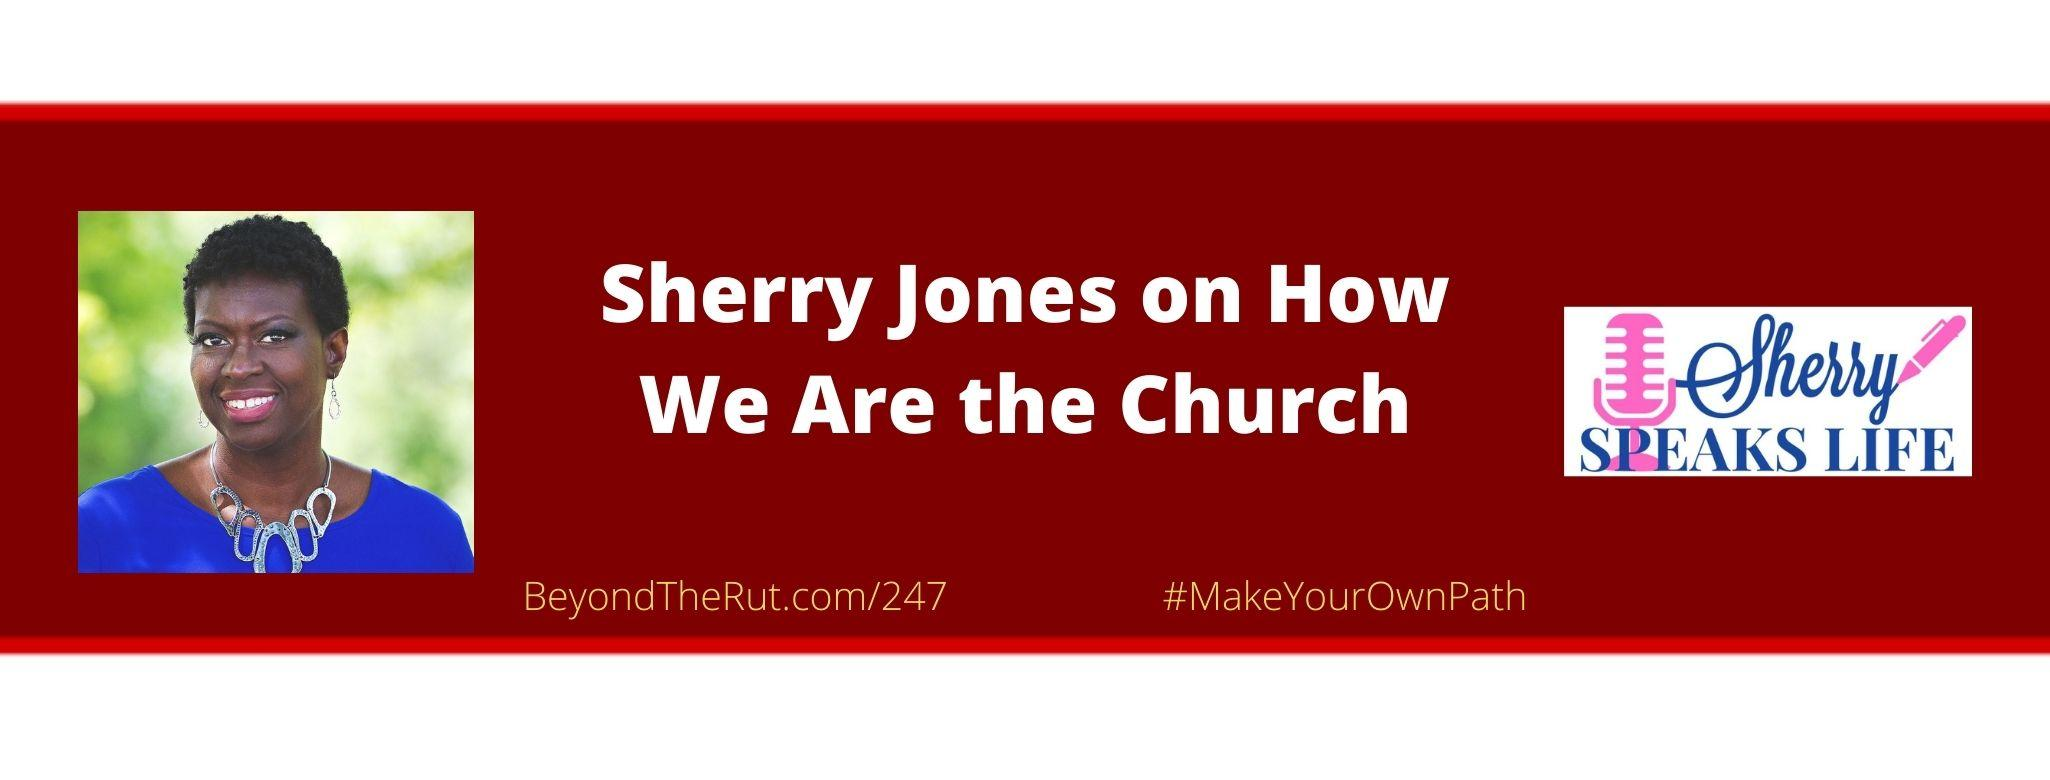 We are the church